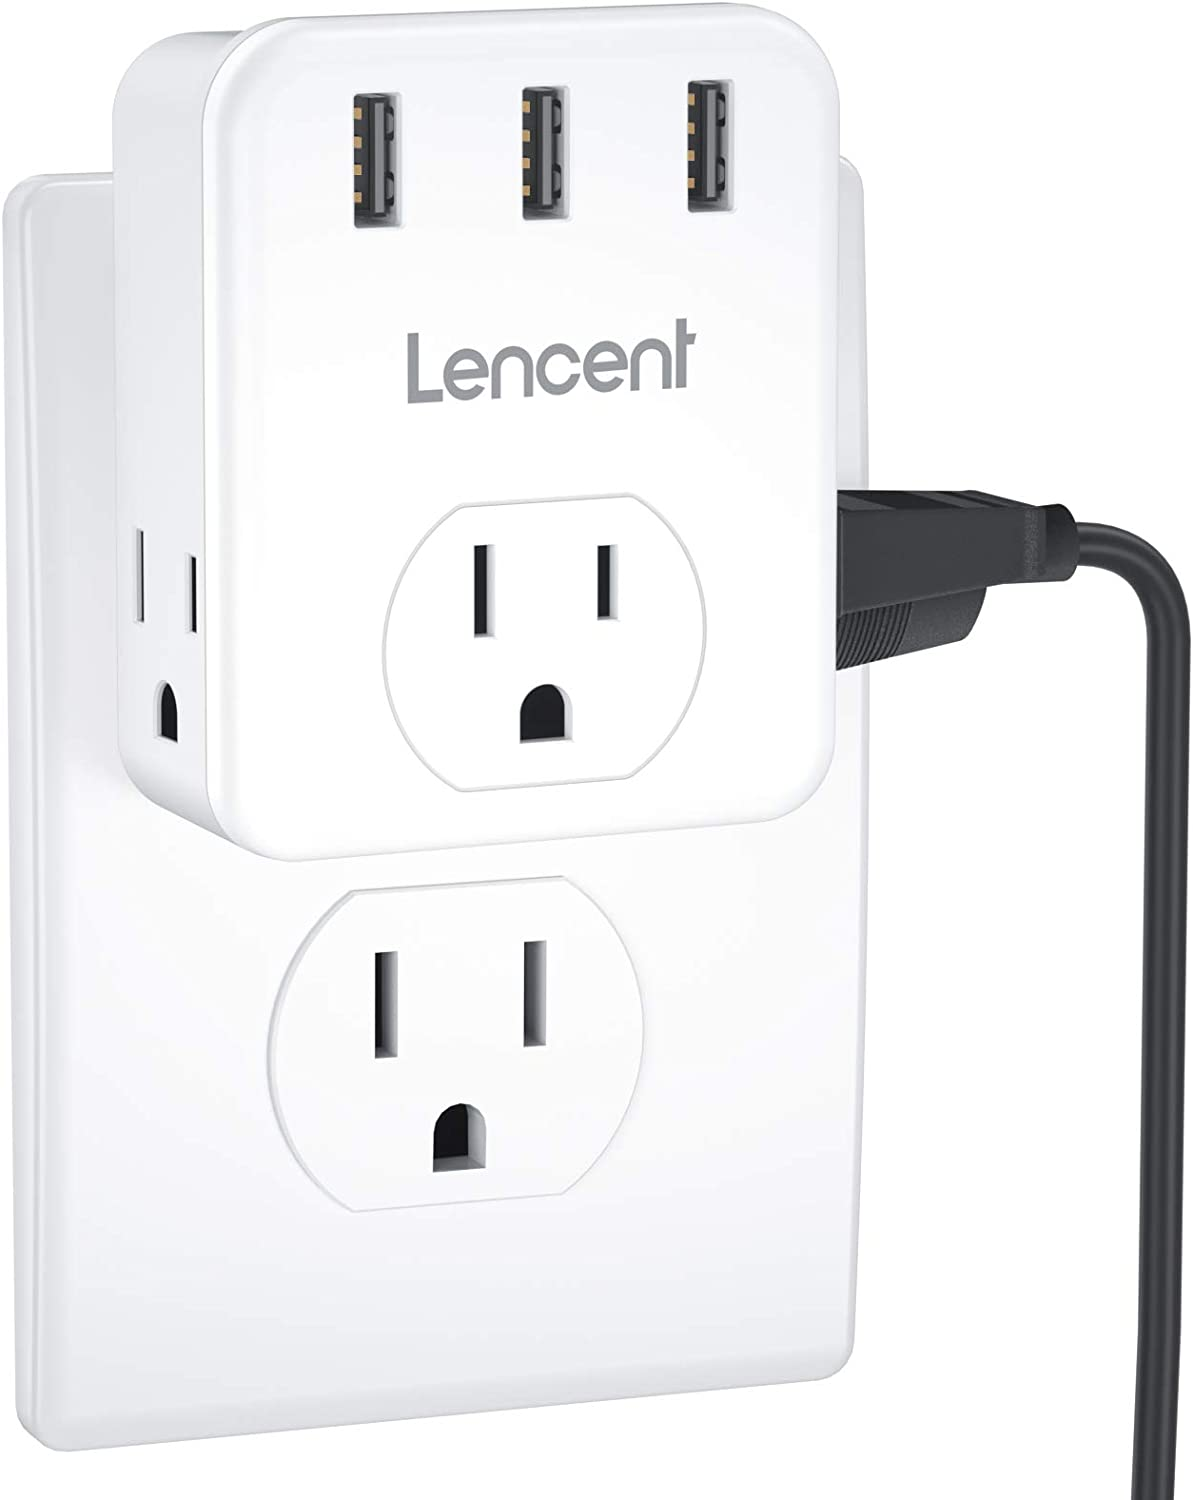 Multi Plug Outlet Extender, LENCENT Electrical 3 Outlets Splitter with 3 USB Ports, Wall Charger, 3 Prong, Multiple Power Outlet Expander for Home, Office, Hotel, Dorm, Cruise Ship Approved